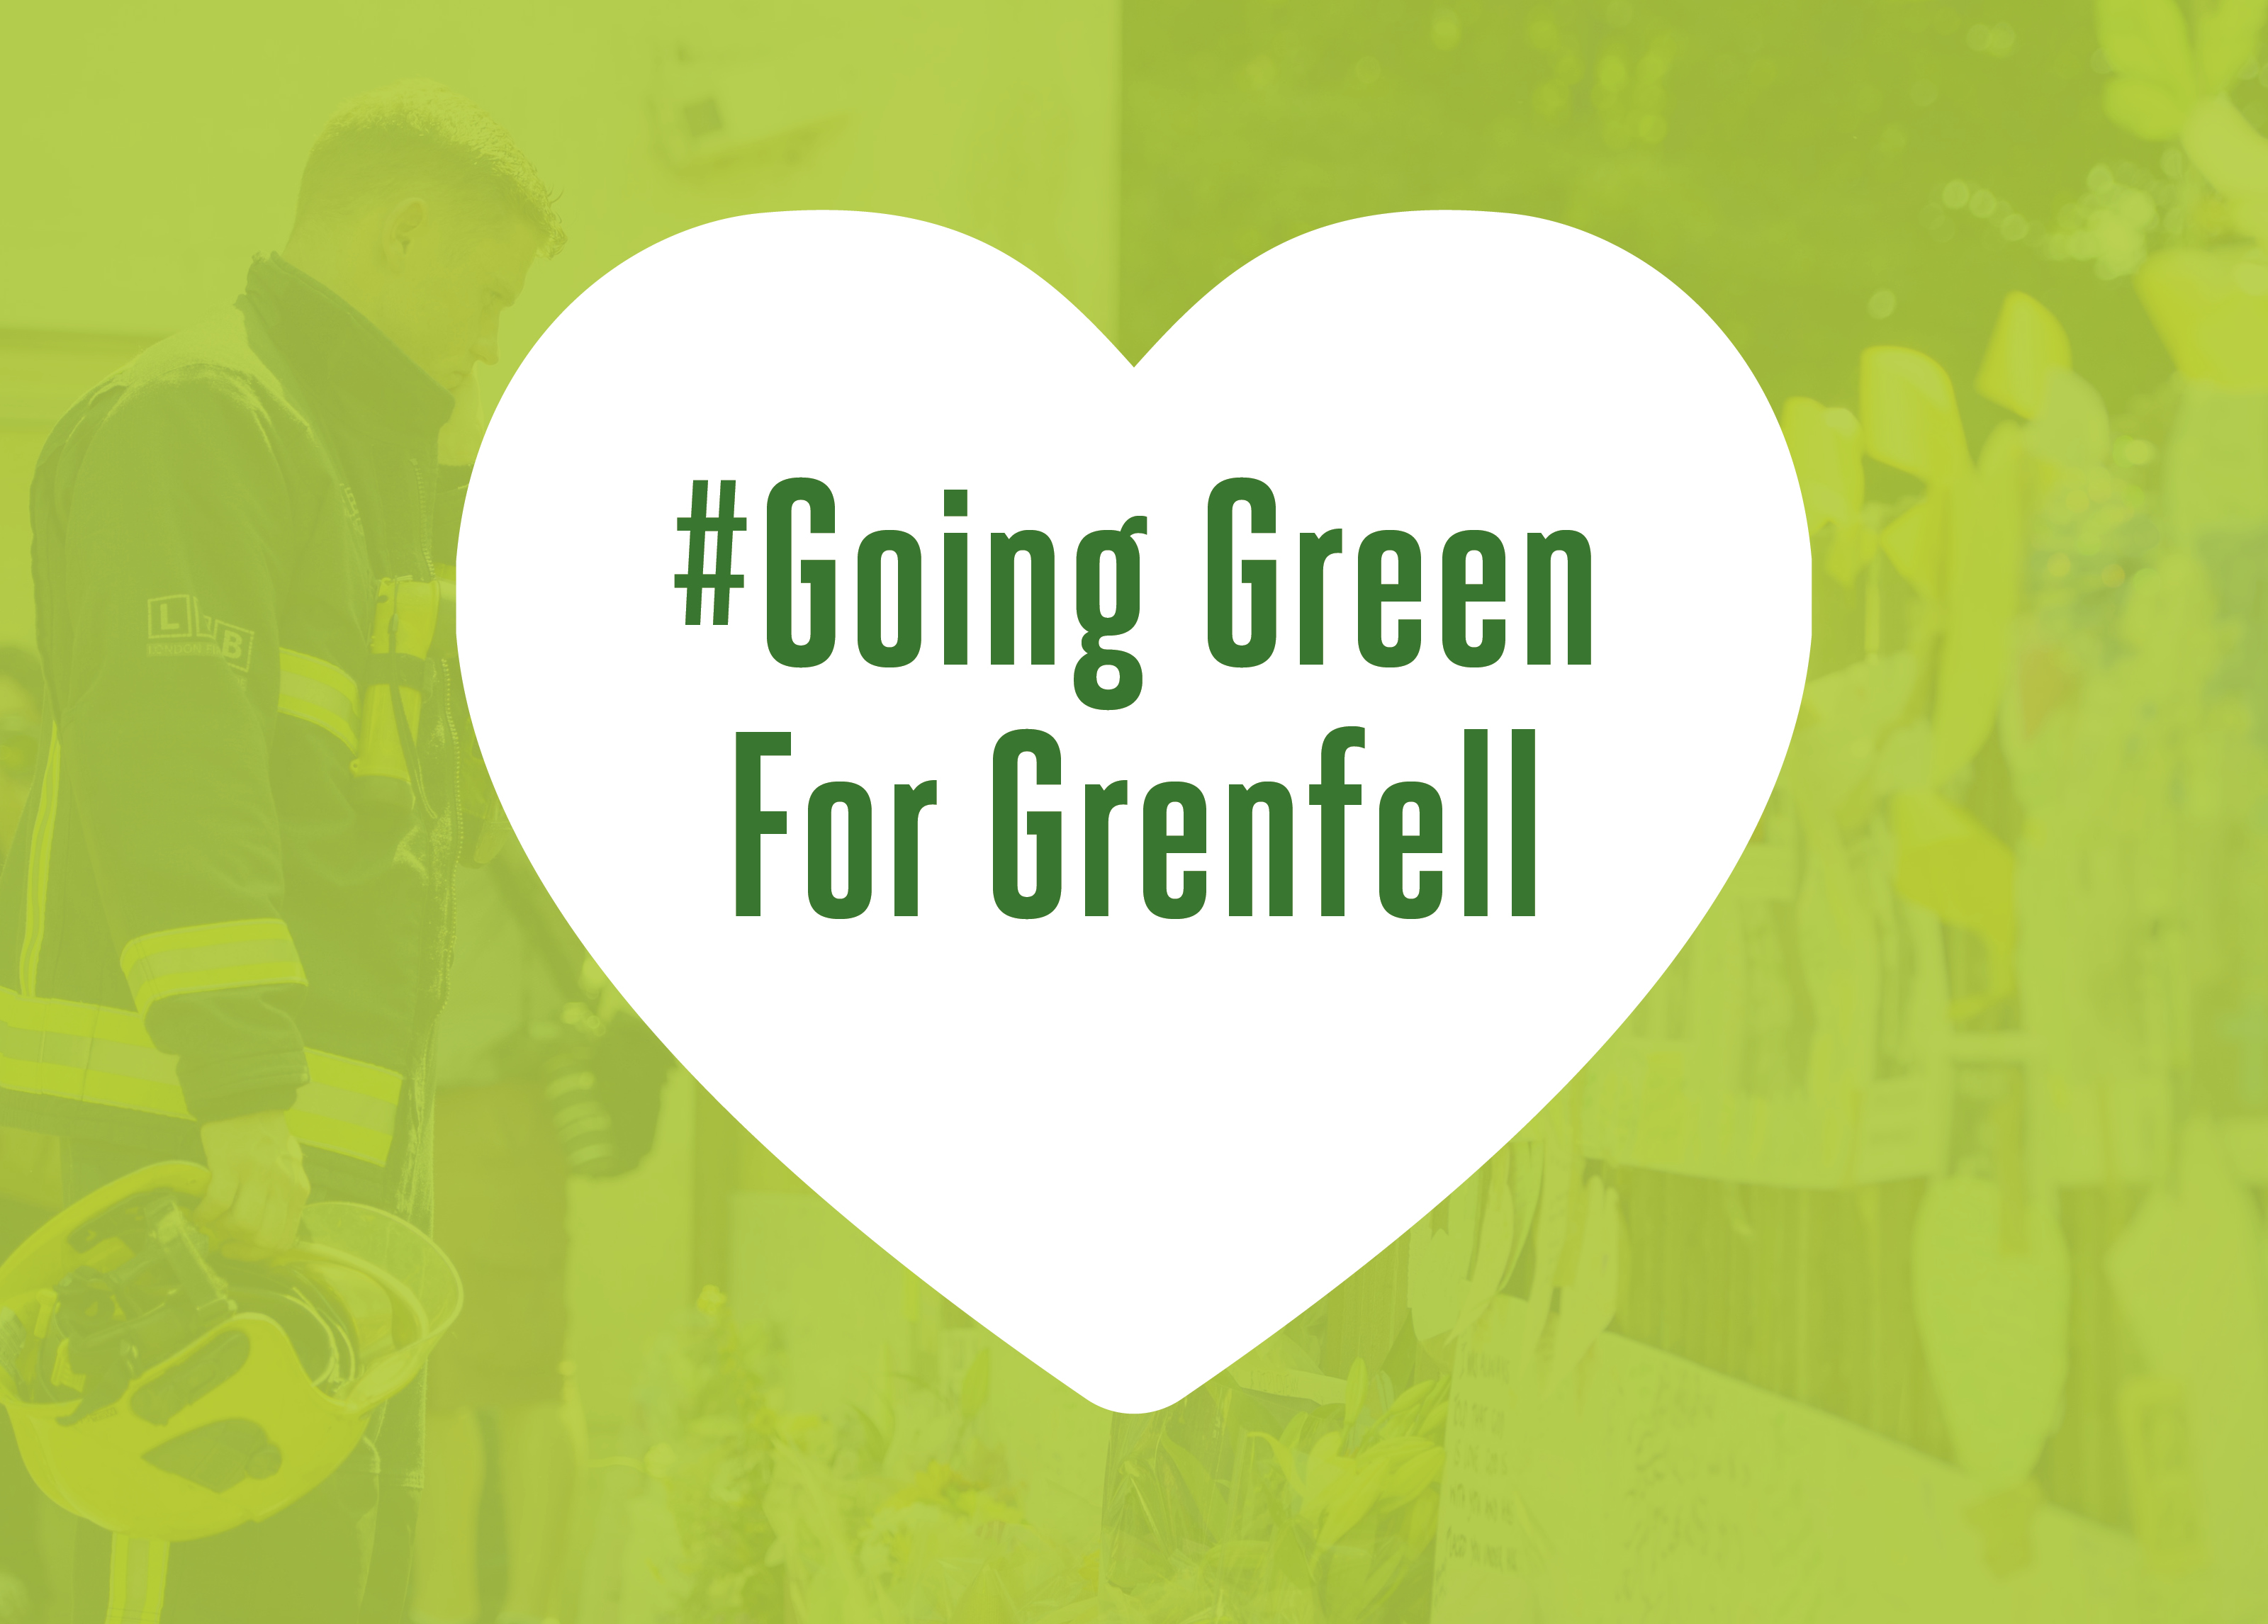 We're going Green For Grenfell